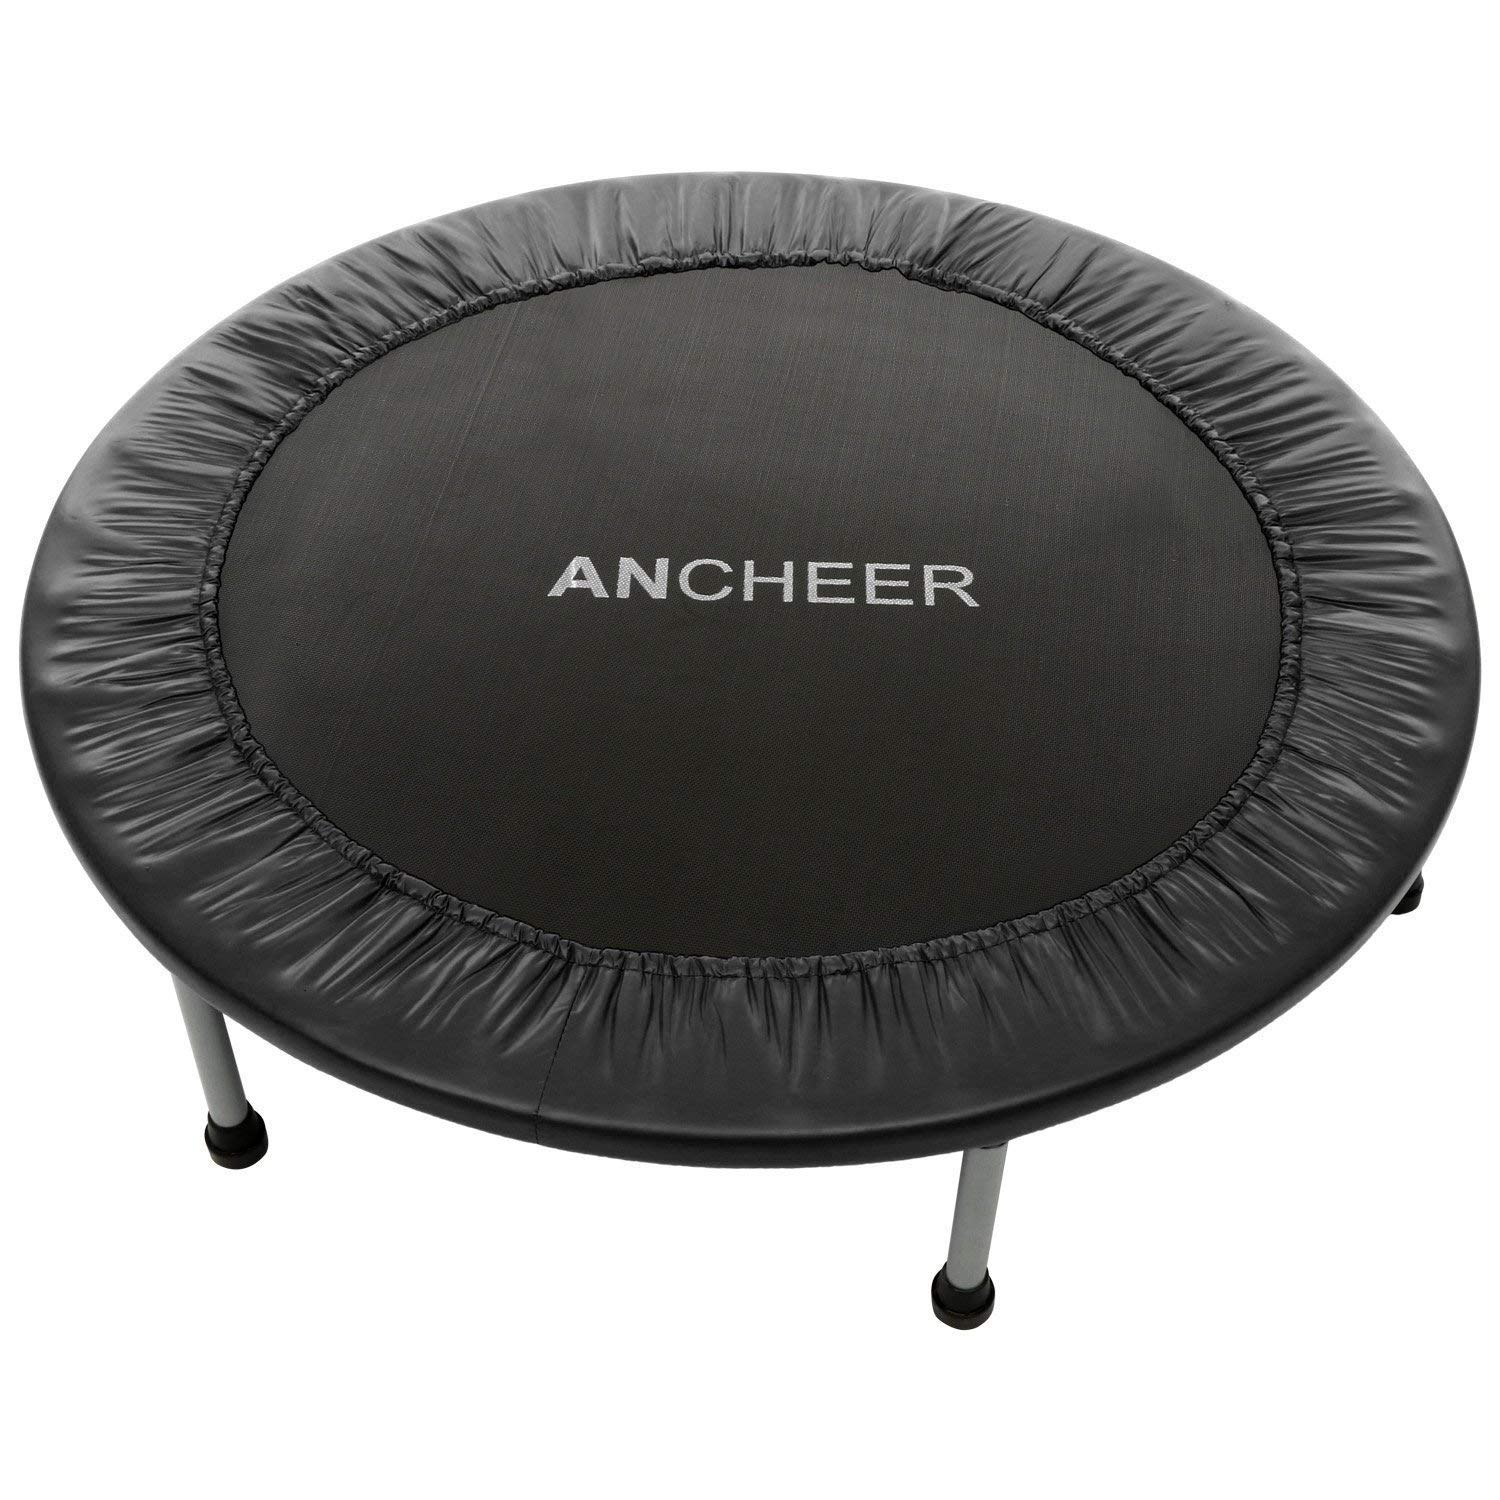 Ancheer Rebounder Trampoline With Safety Pad